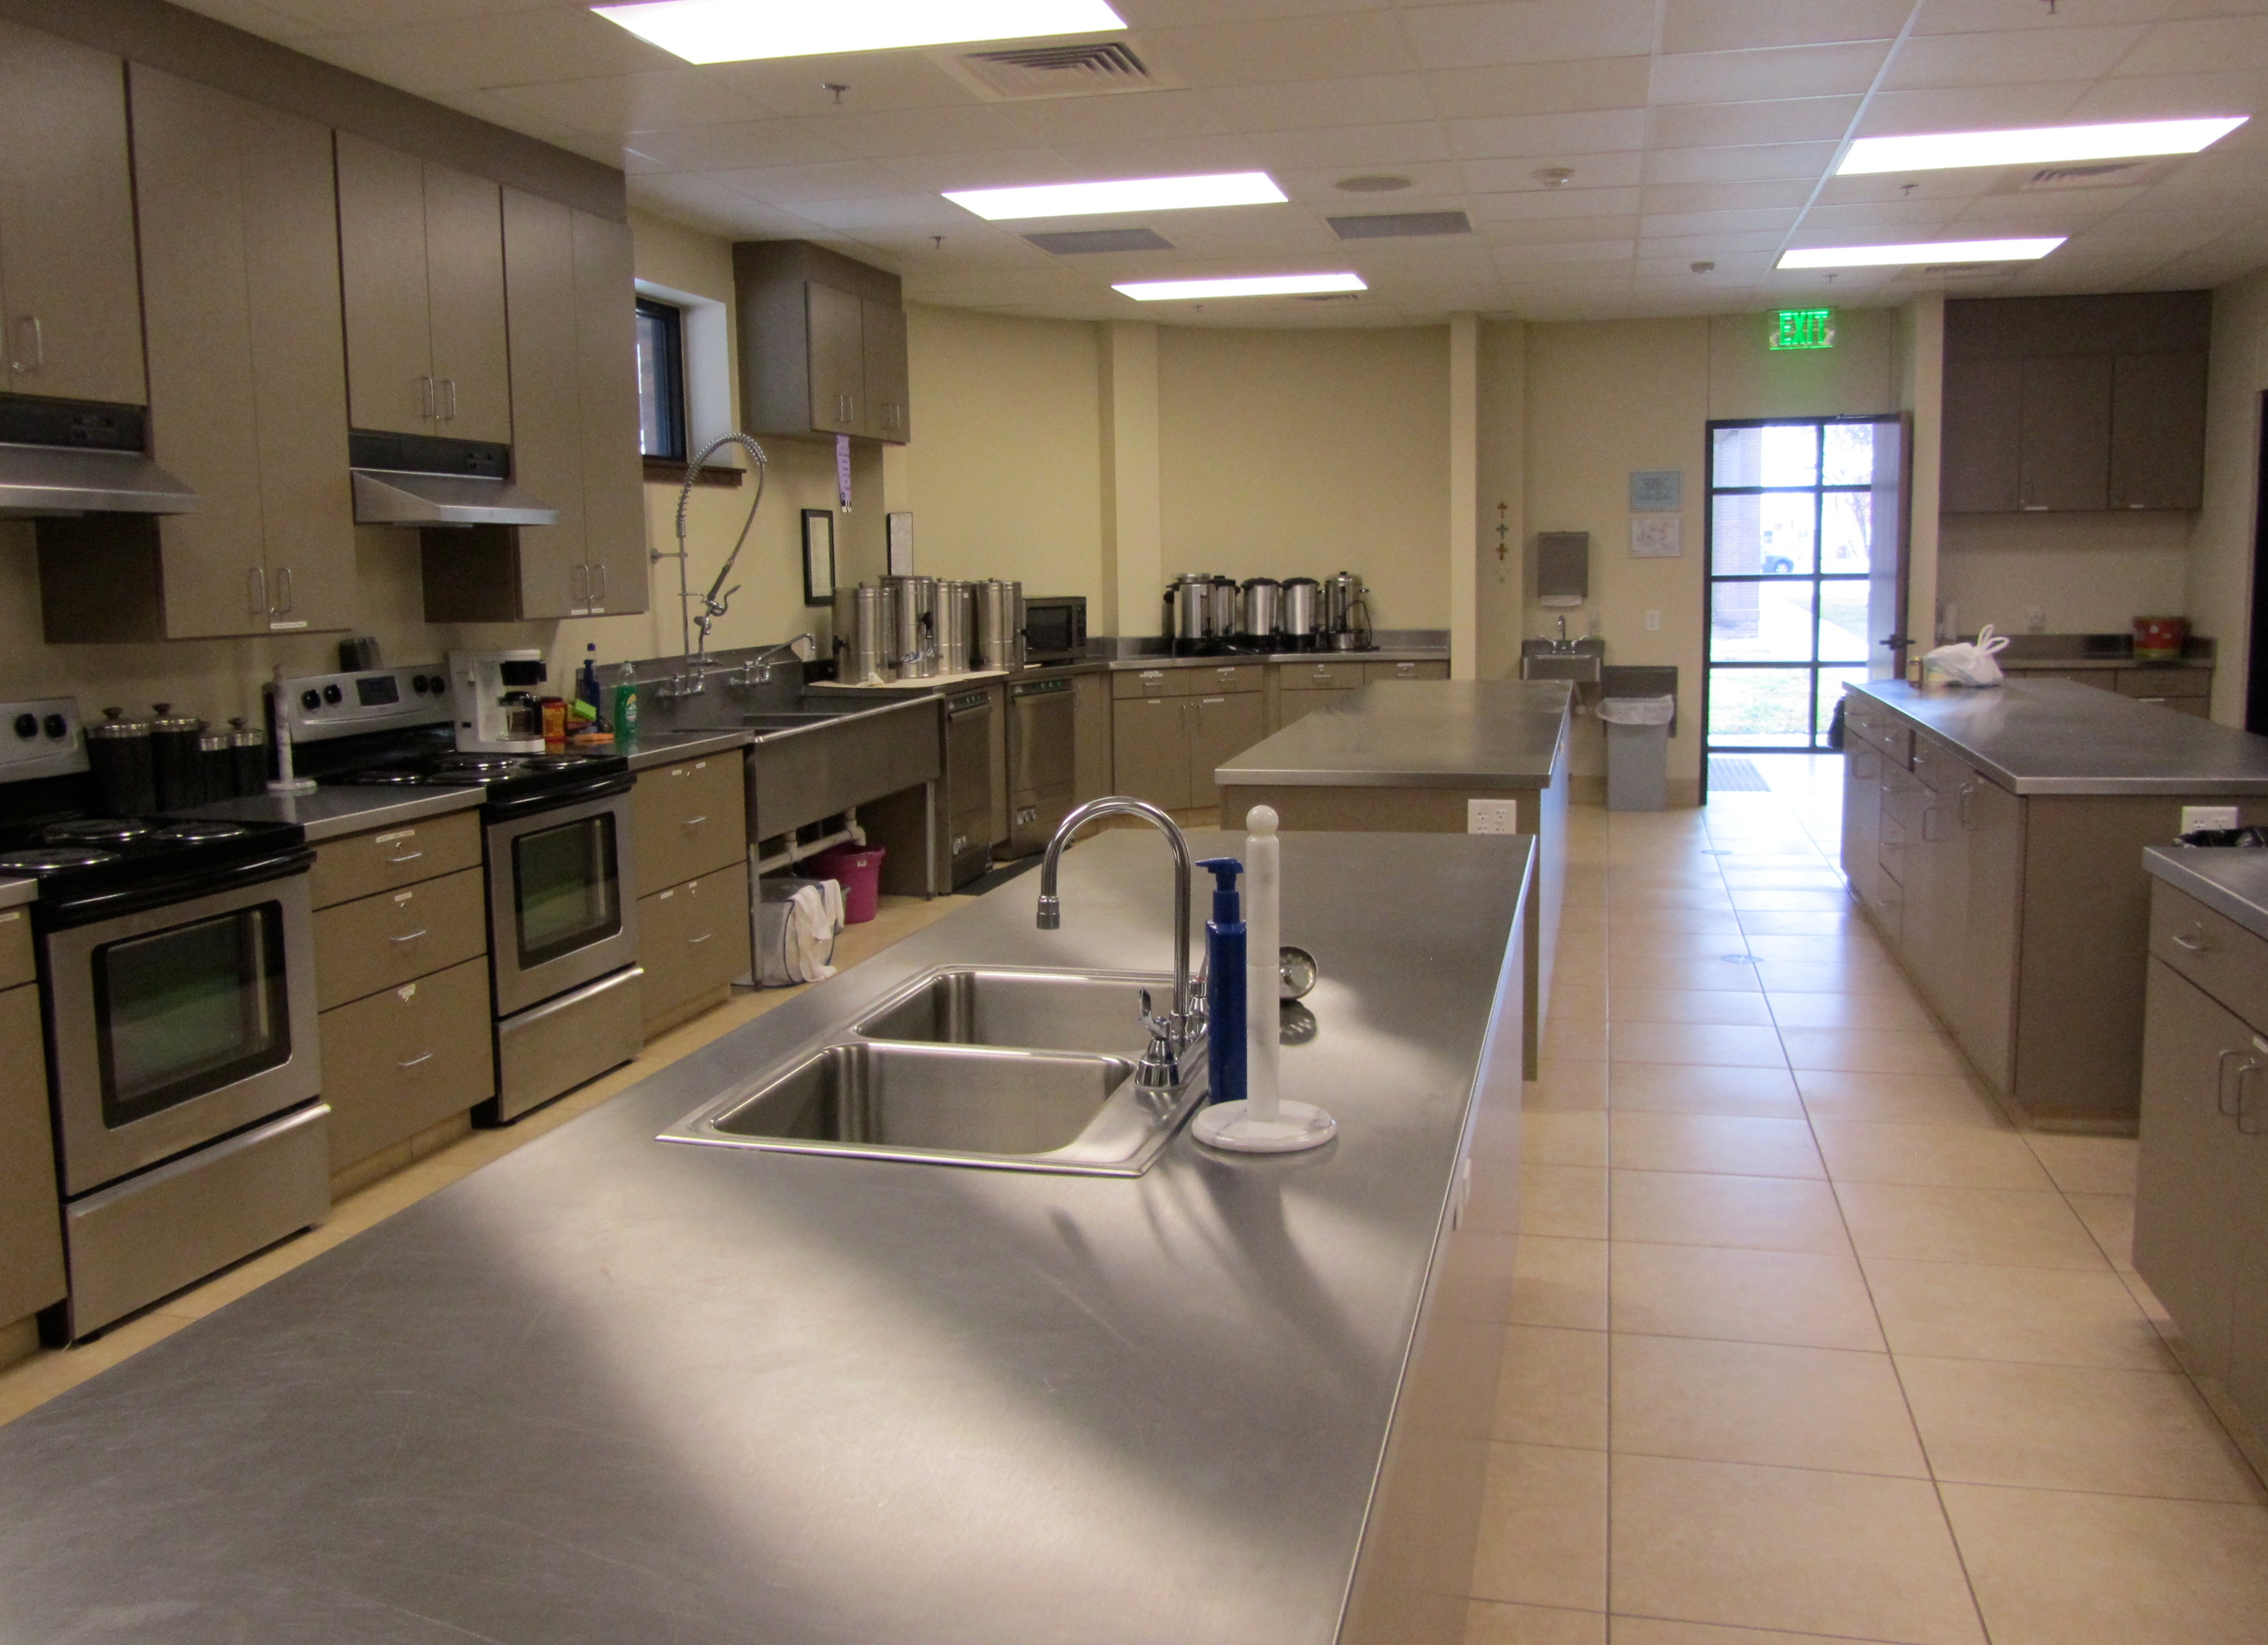 Church Kitchens And Accessibility 5 Issues To Consider. Wolf Classic Cabinets Wolf Ada Compliant Kitchen Cabinets   busline us